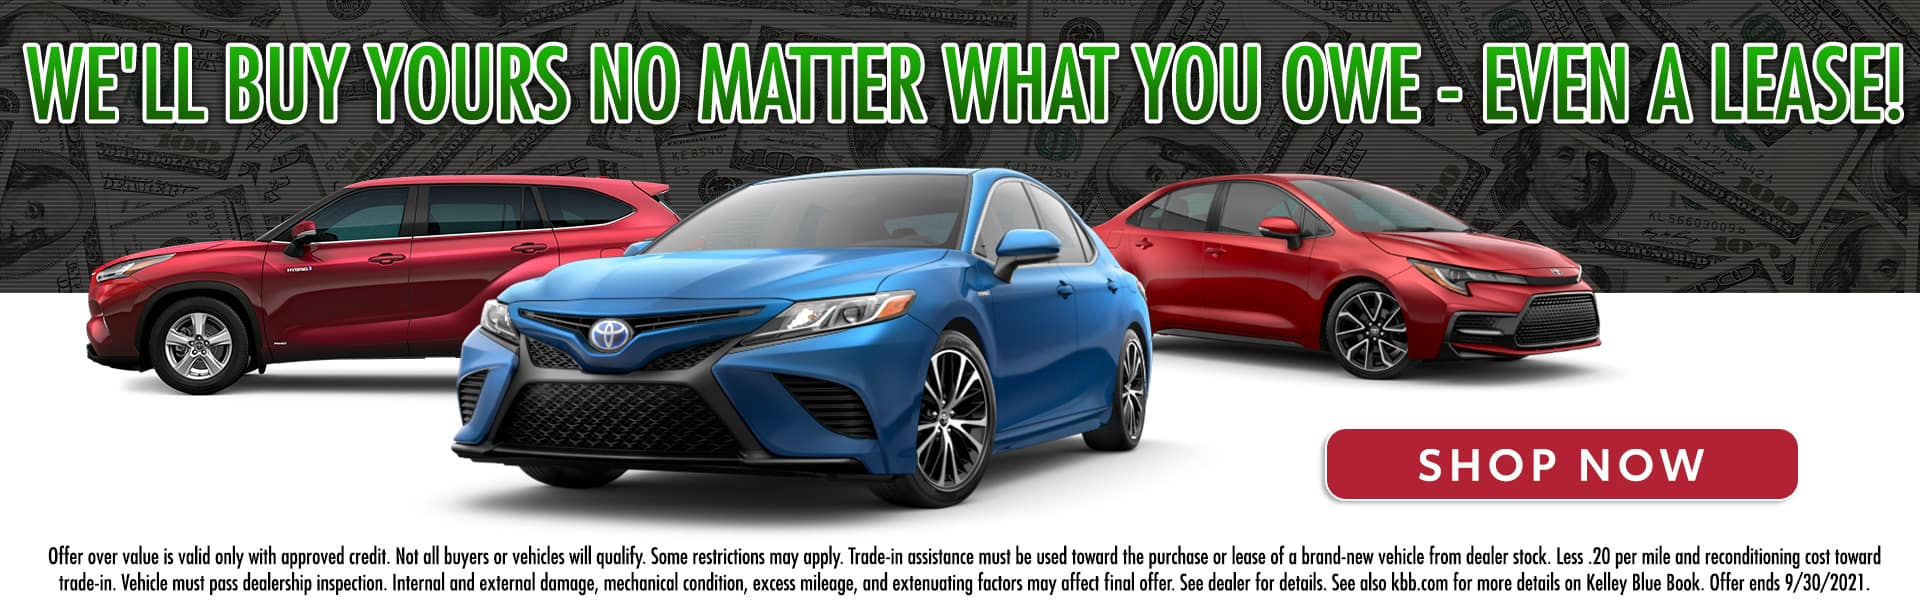 We'll Buy Yours No Matter What You Owe - Even A Lease!